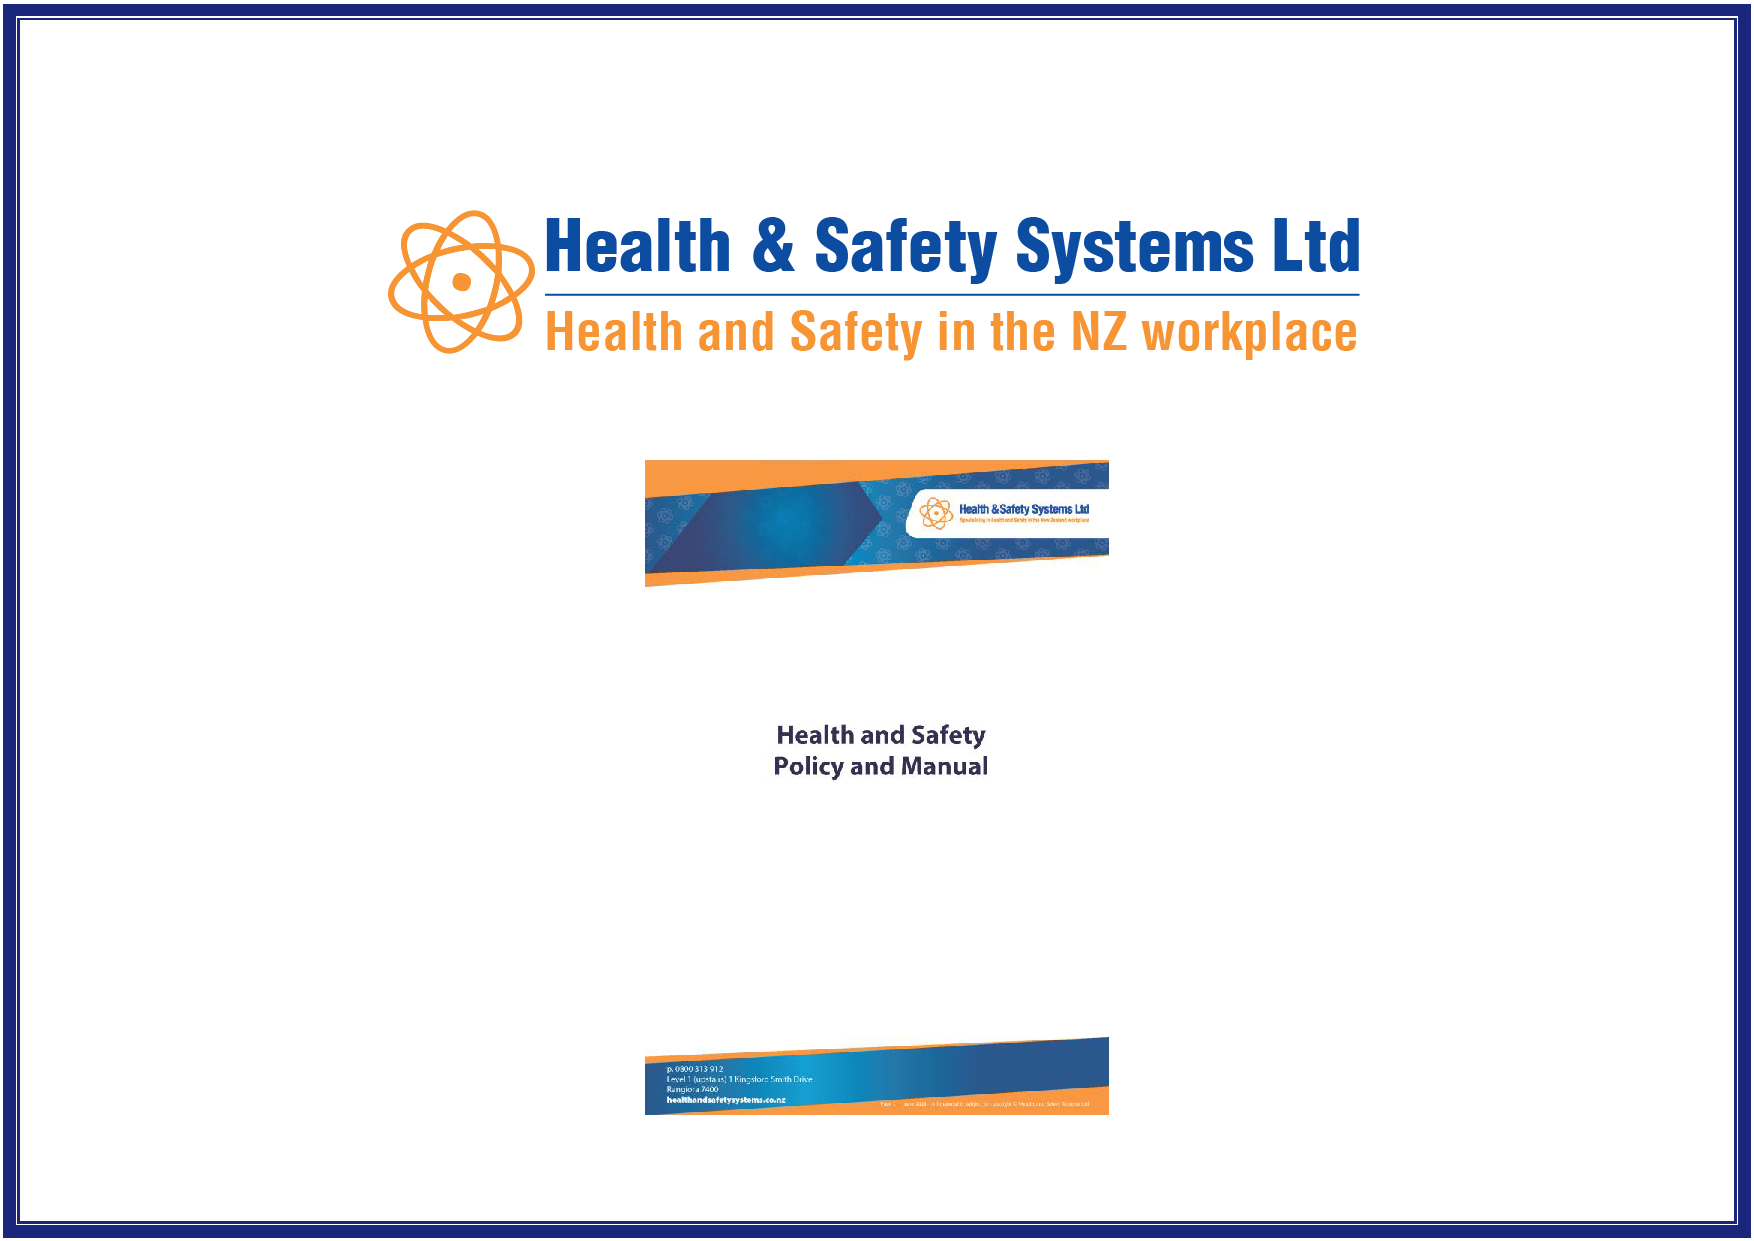 Health and Safety Plans with Border.png